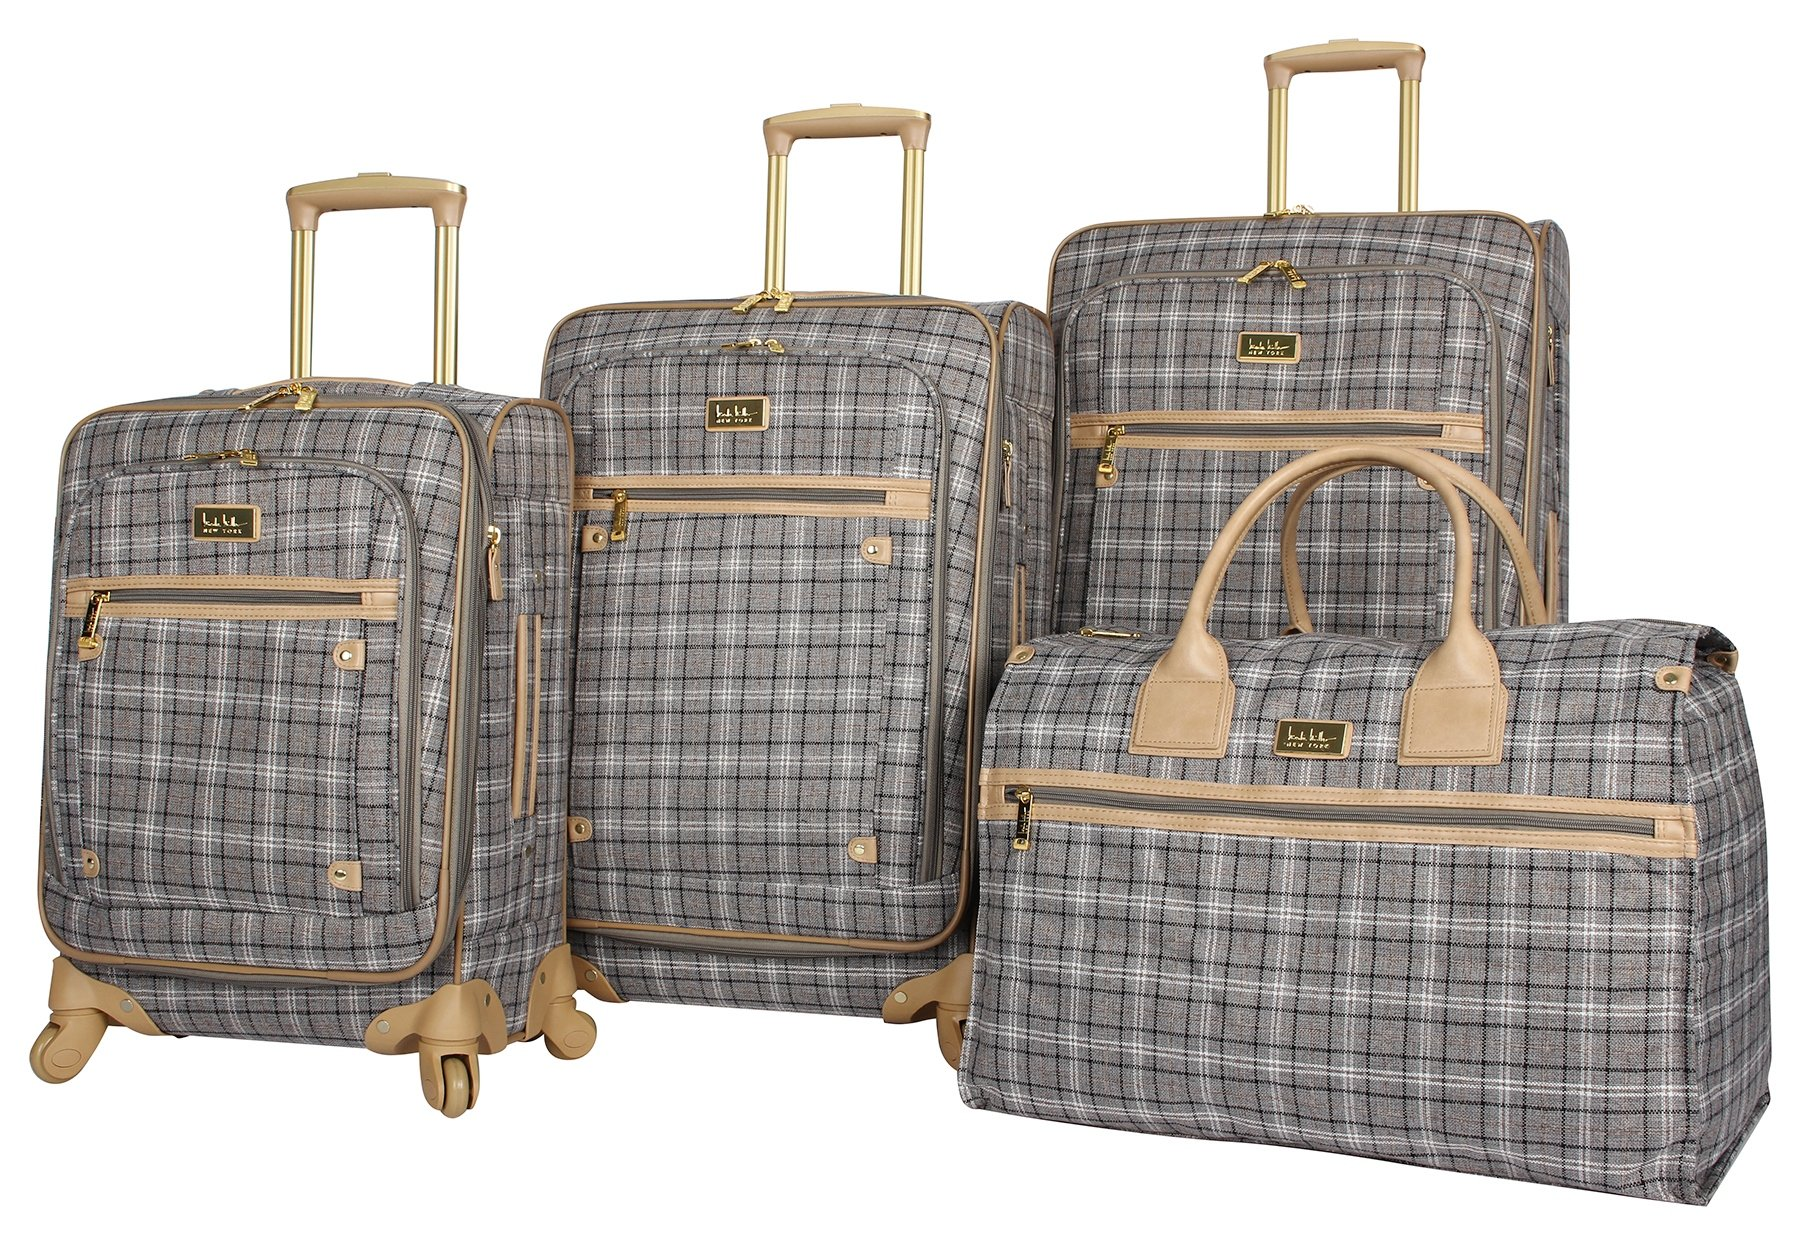 Nicole Miller New York Taylor Set of 4: Box Bag, 20'', 24'', 28'' Expandable Spinner Luggages (Gray Plaid)